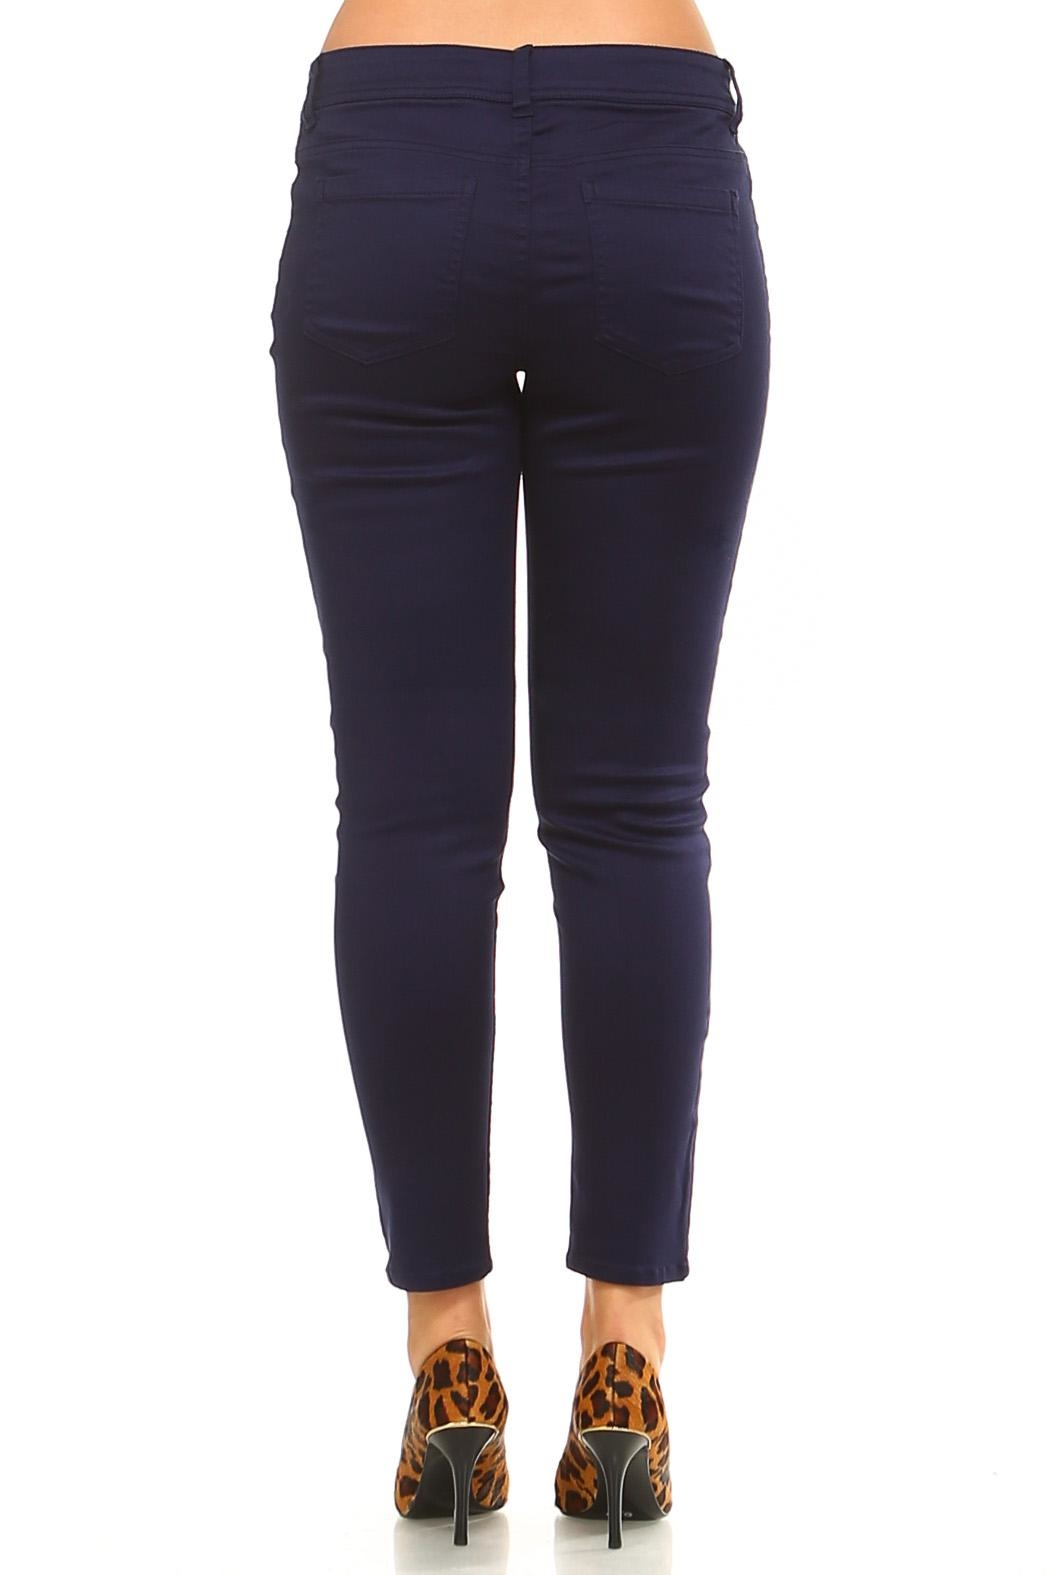 Baccini Ankle Stretch Pants - Side Cropped Image